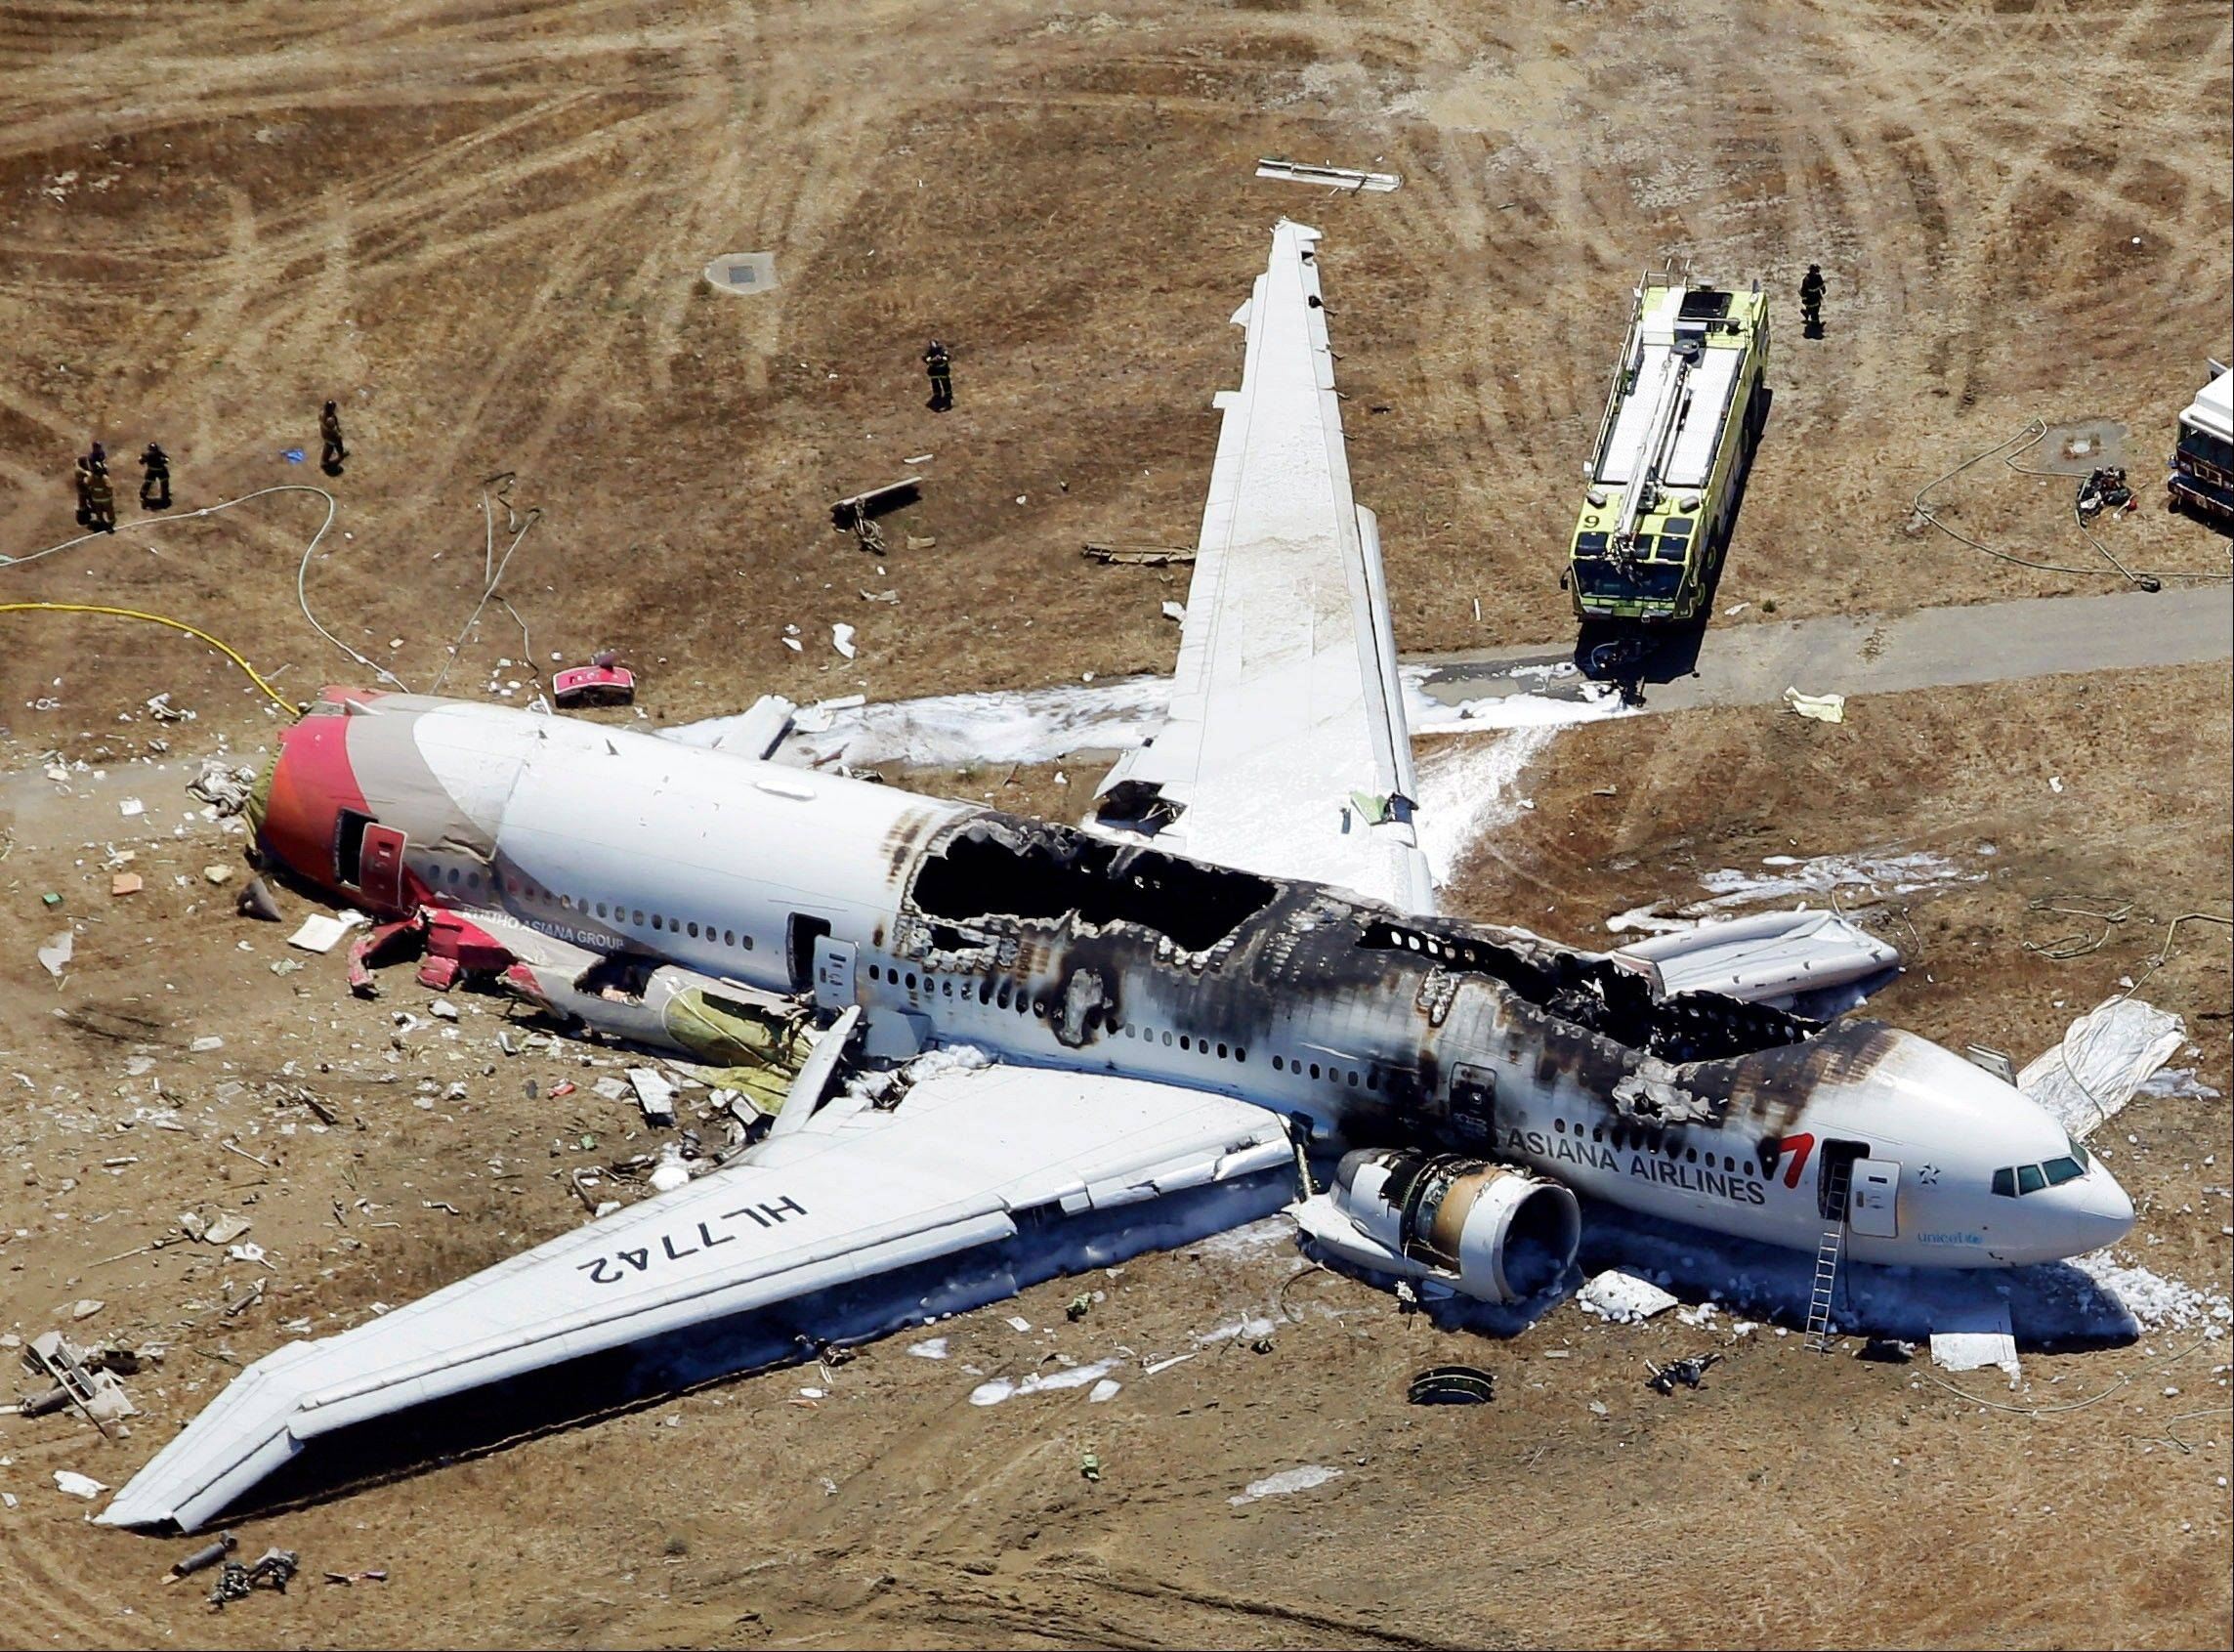 This aerial photo shows the wreckage of the Asiana Flight 214 airplane after it crashed at the San Francisco International Airport in San Francisco, Saturday.